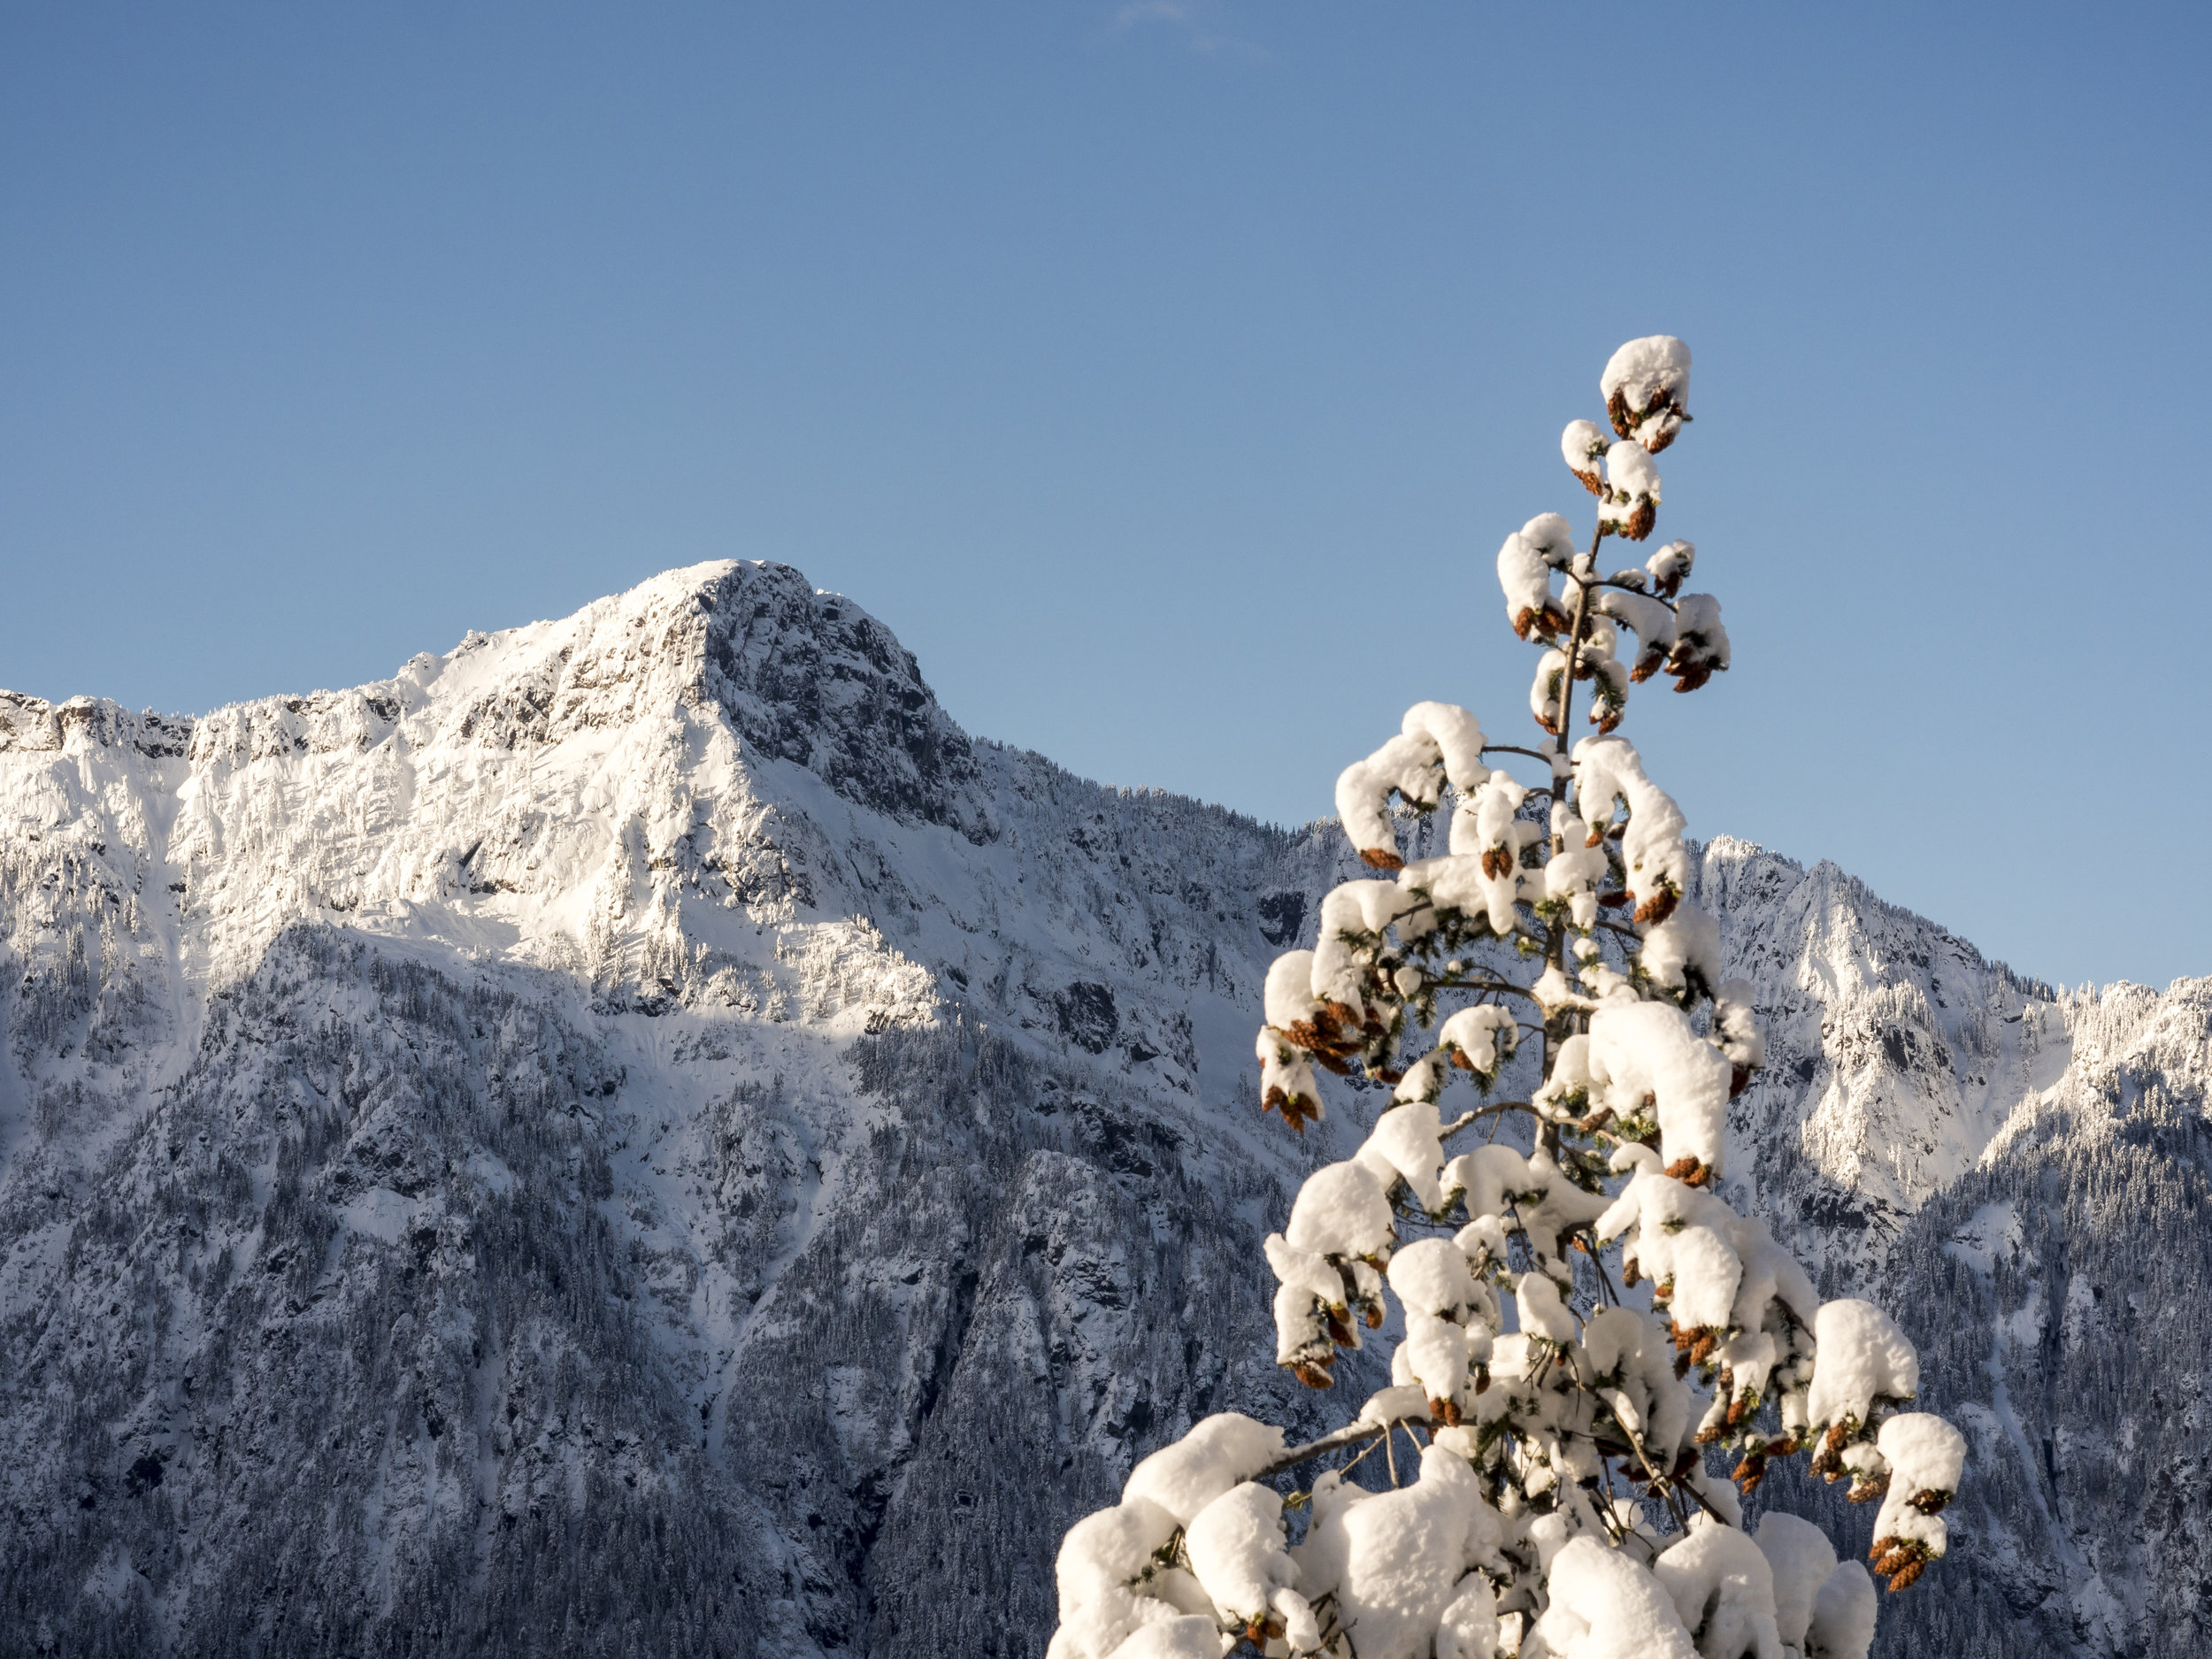 Snow Covered Mountain Ridgline with Pine Cones on Tree in Foreground